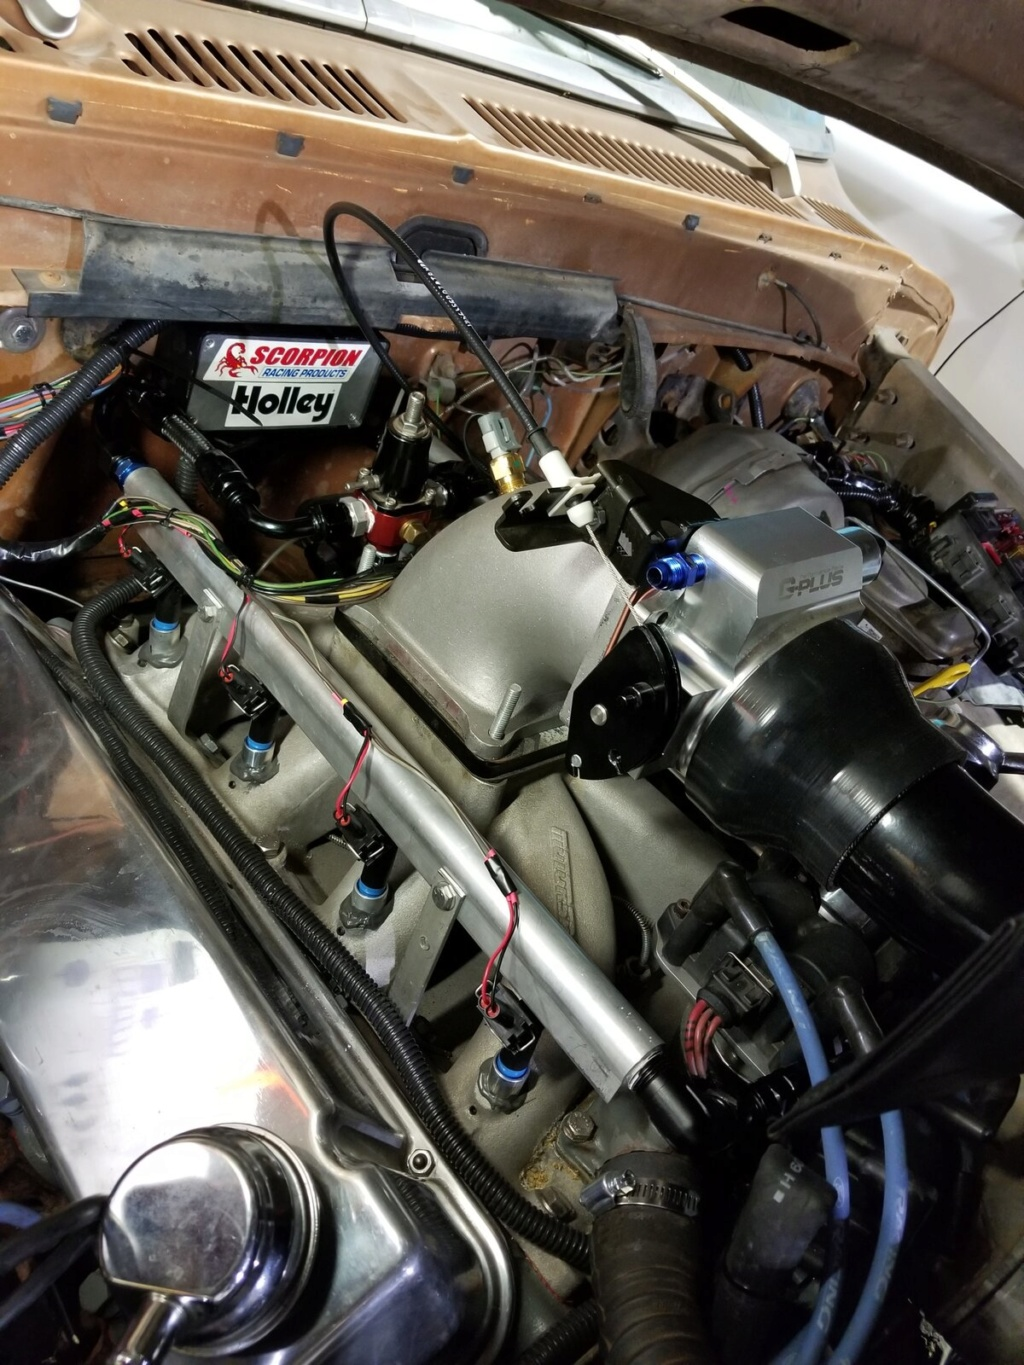 The F250 to F100 turbo project - it's alive. - Page 4 20190910